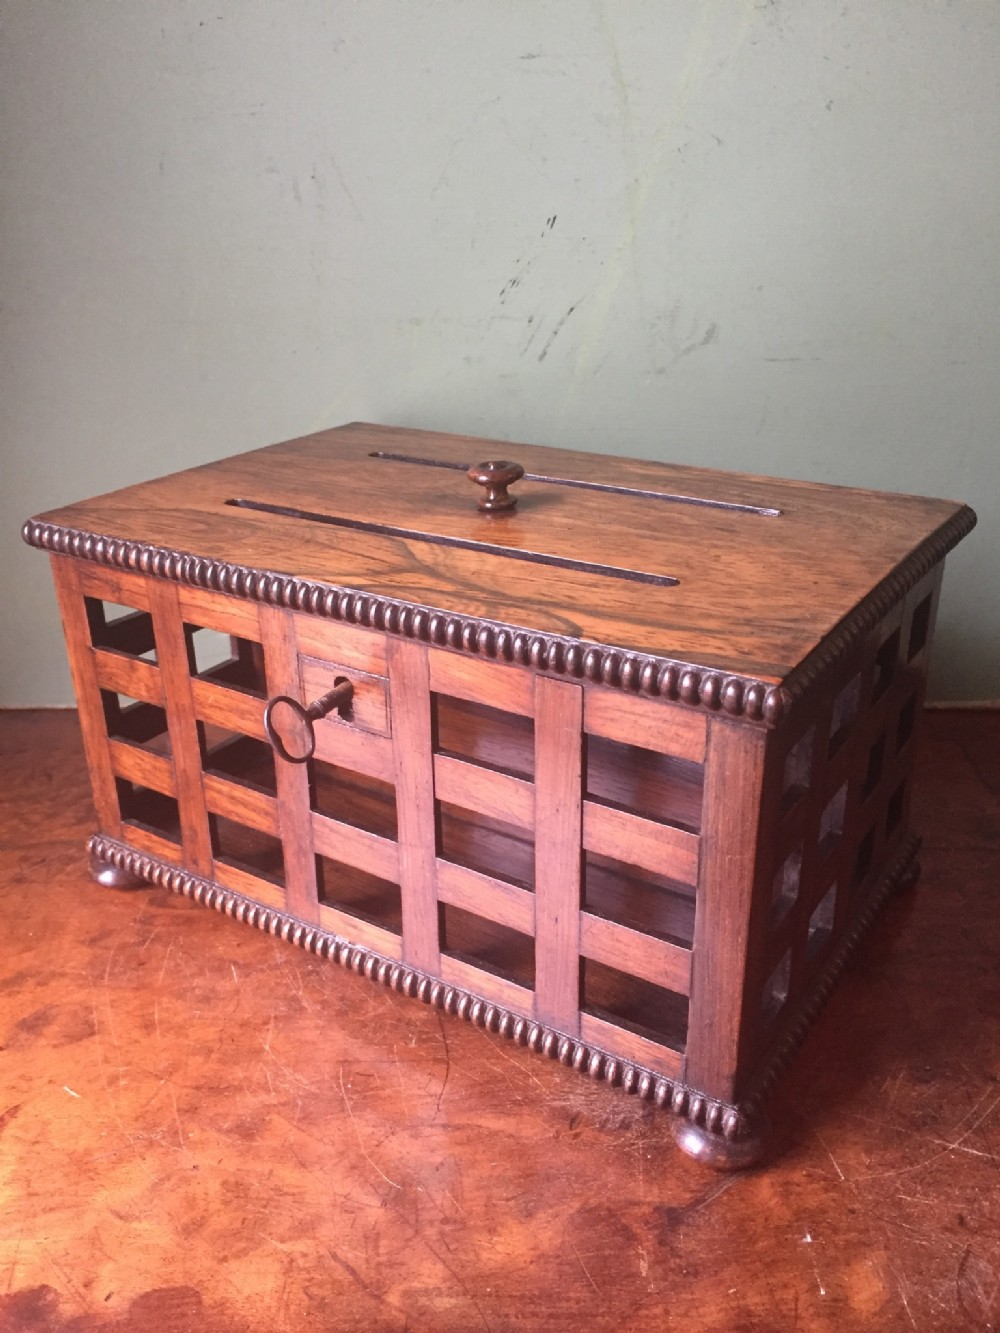 fine quality early c19th regency period rosewood correspondence or letterbox desktop casket